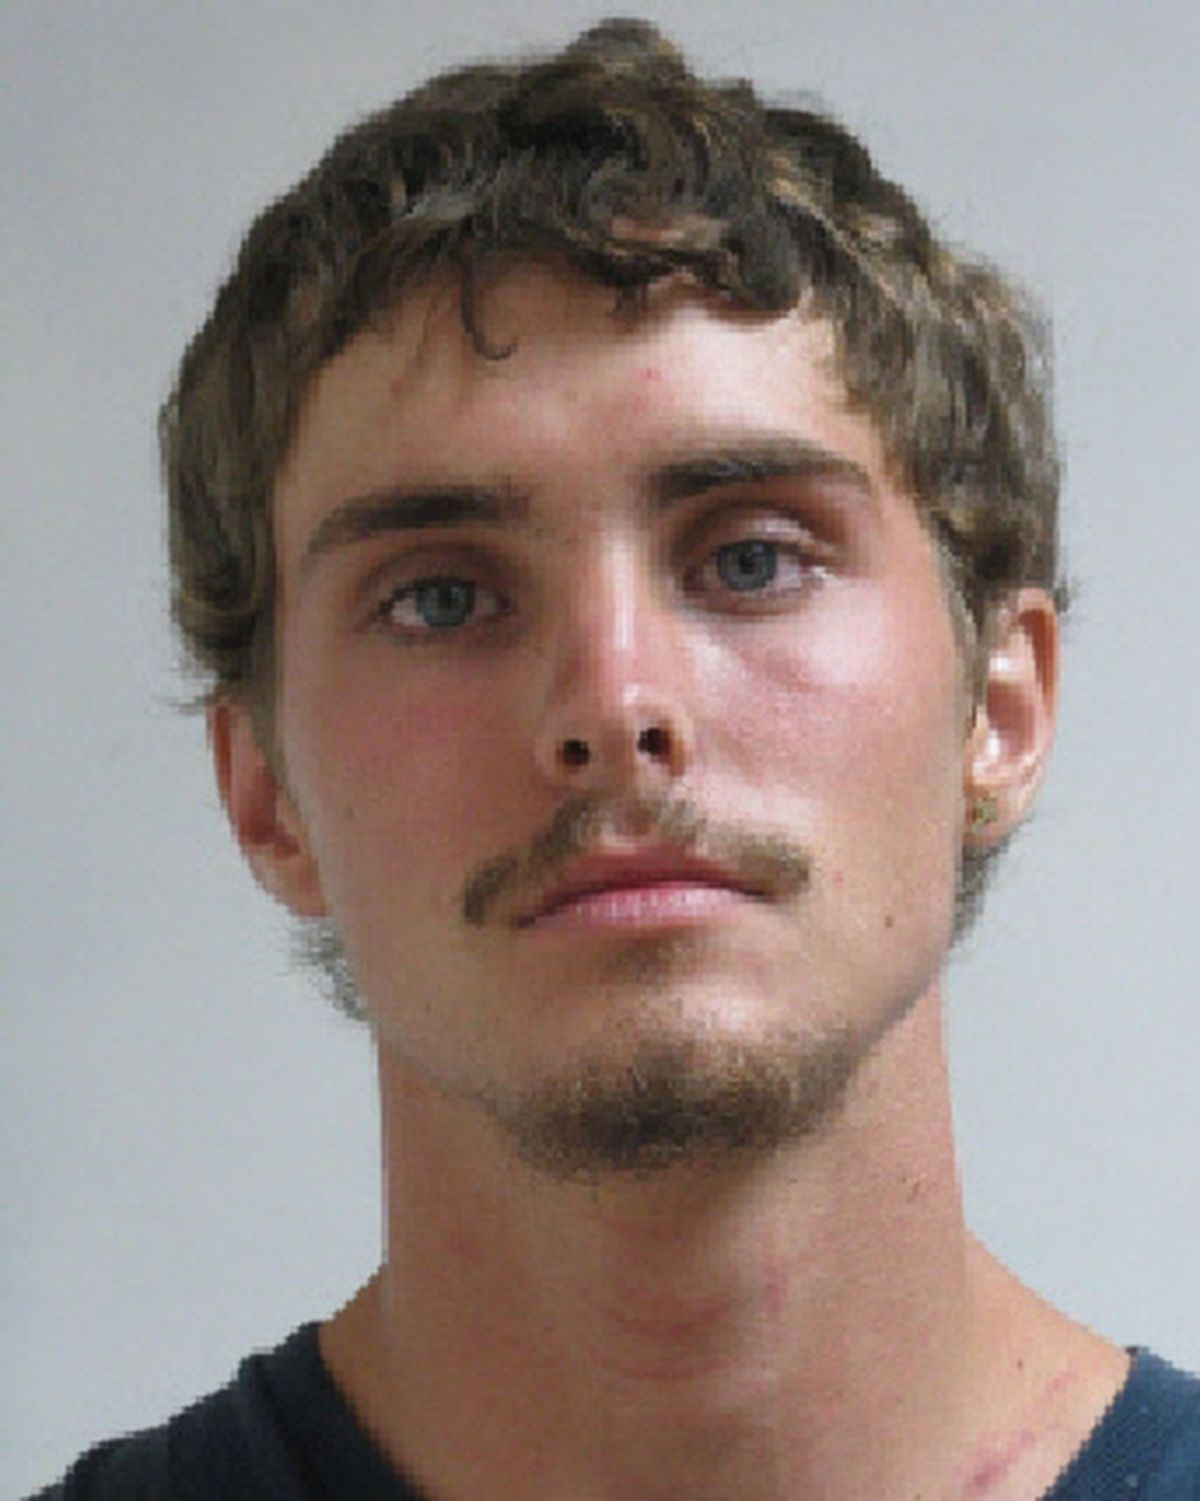 Man charged with leaving scene after 2 killed in motorcycle crash